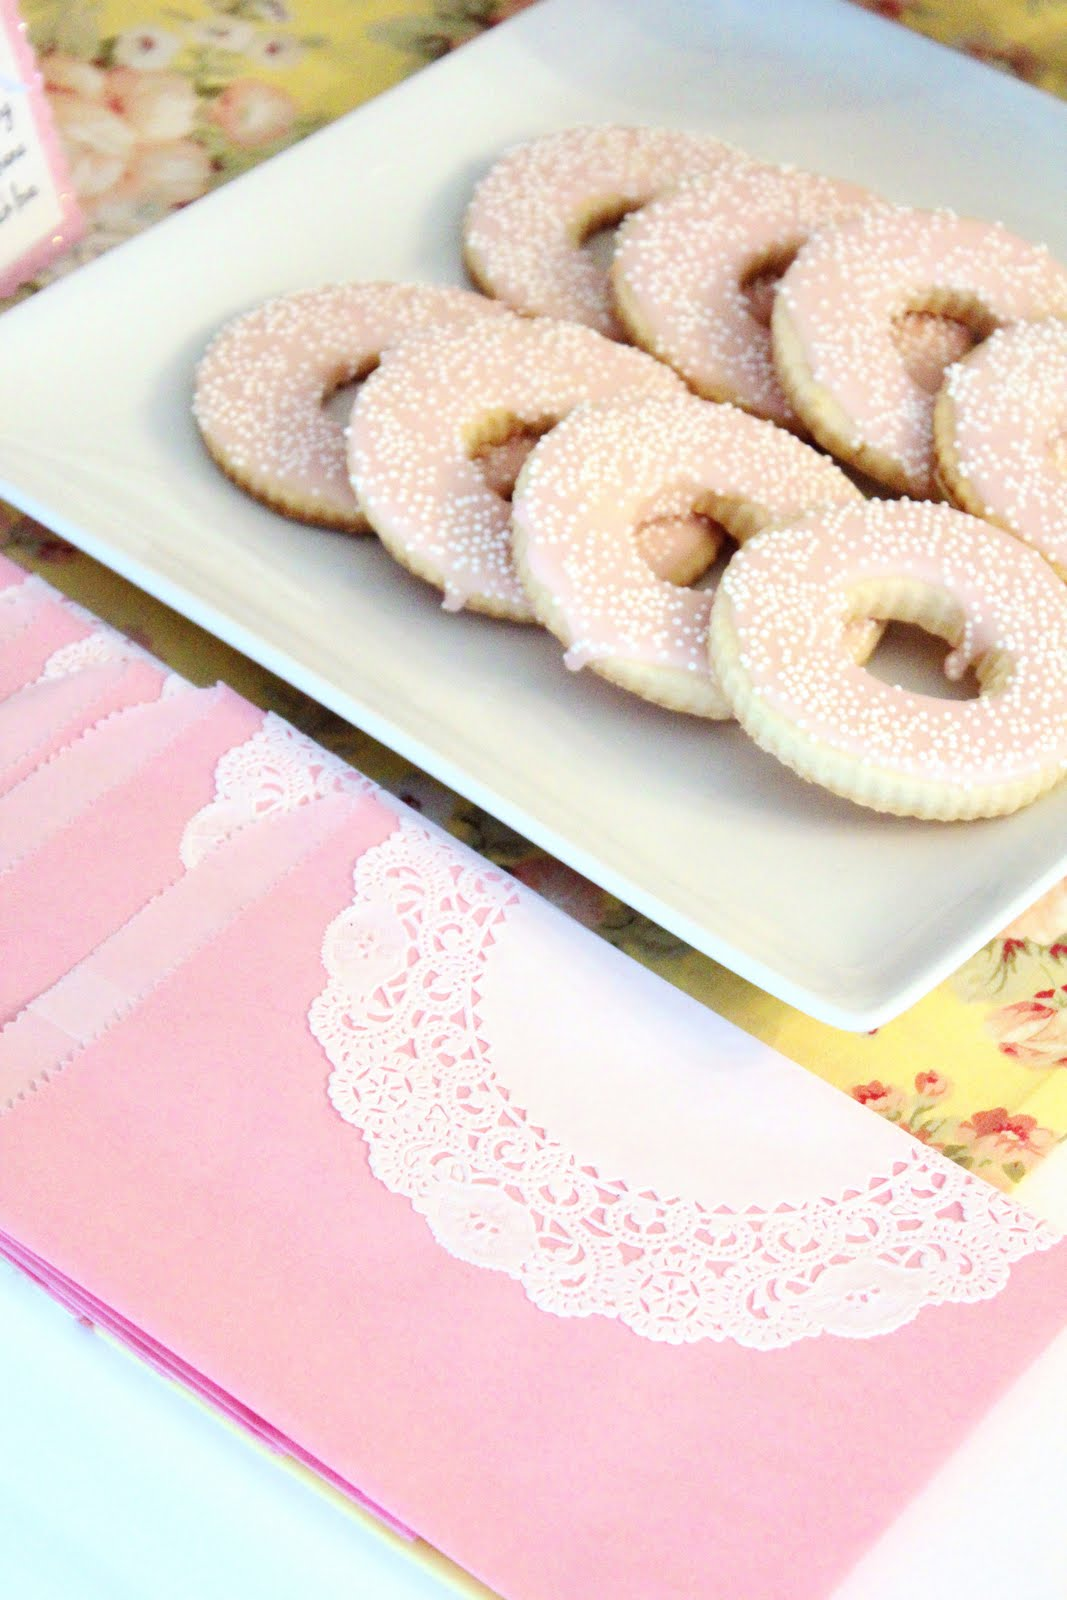 Icing Designs Quot Sprinkled With Love Quot Donut Baby Shower